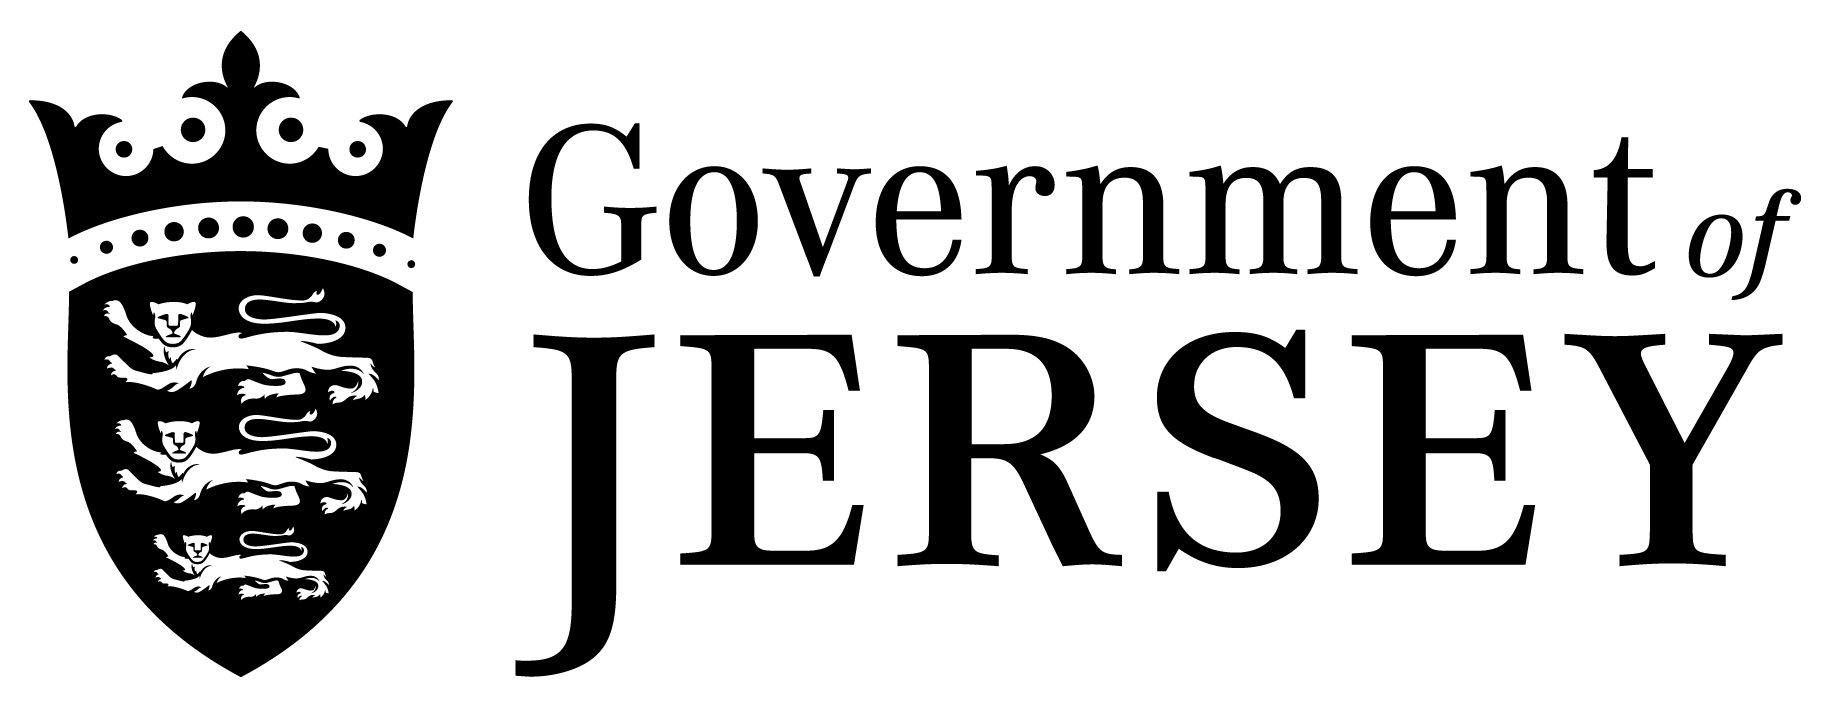 Government of Jersey Logo